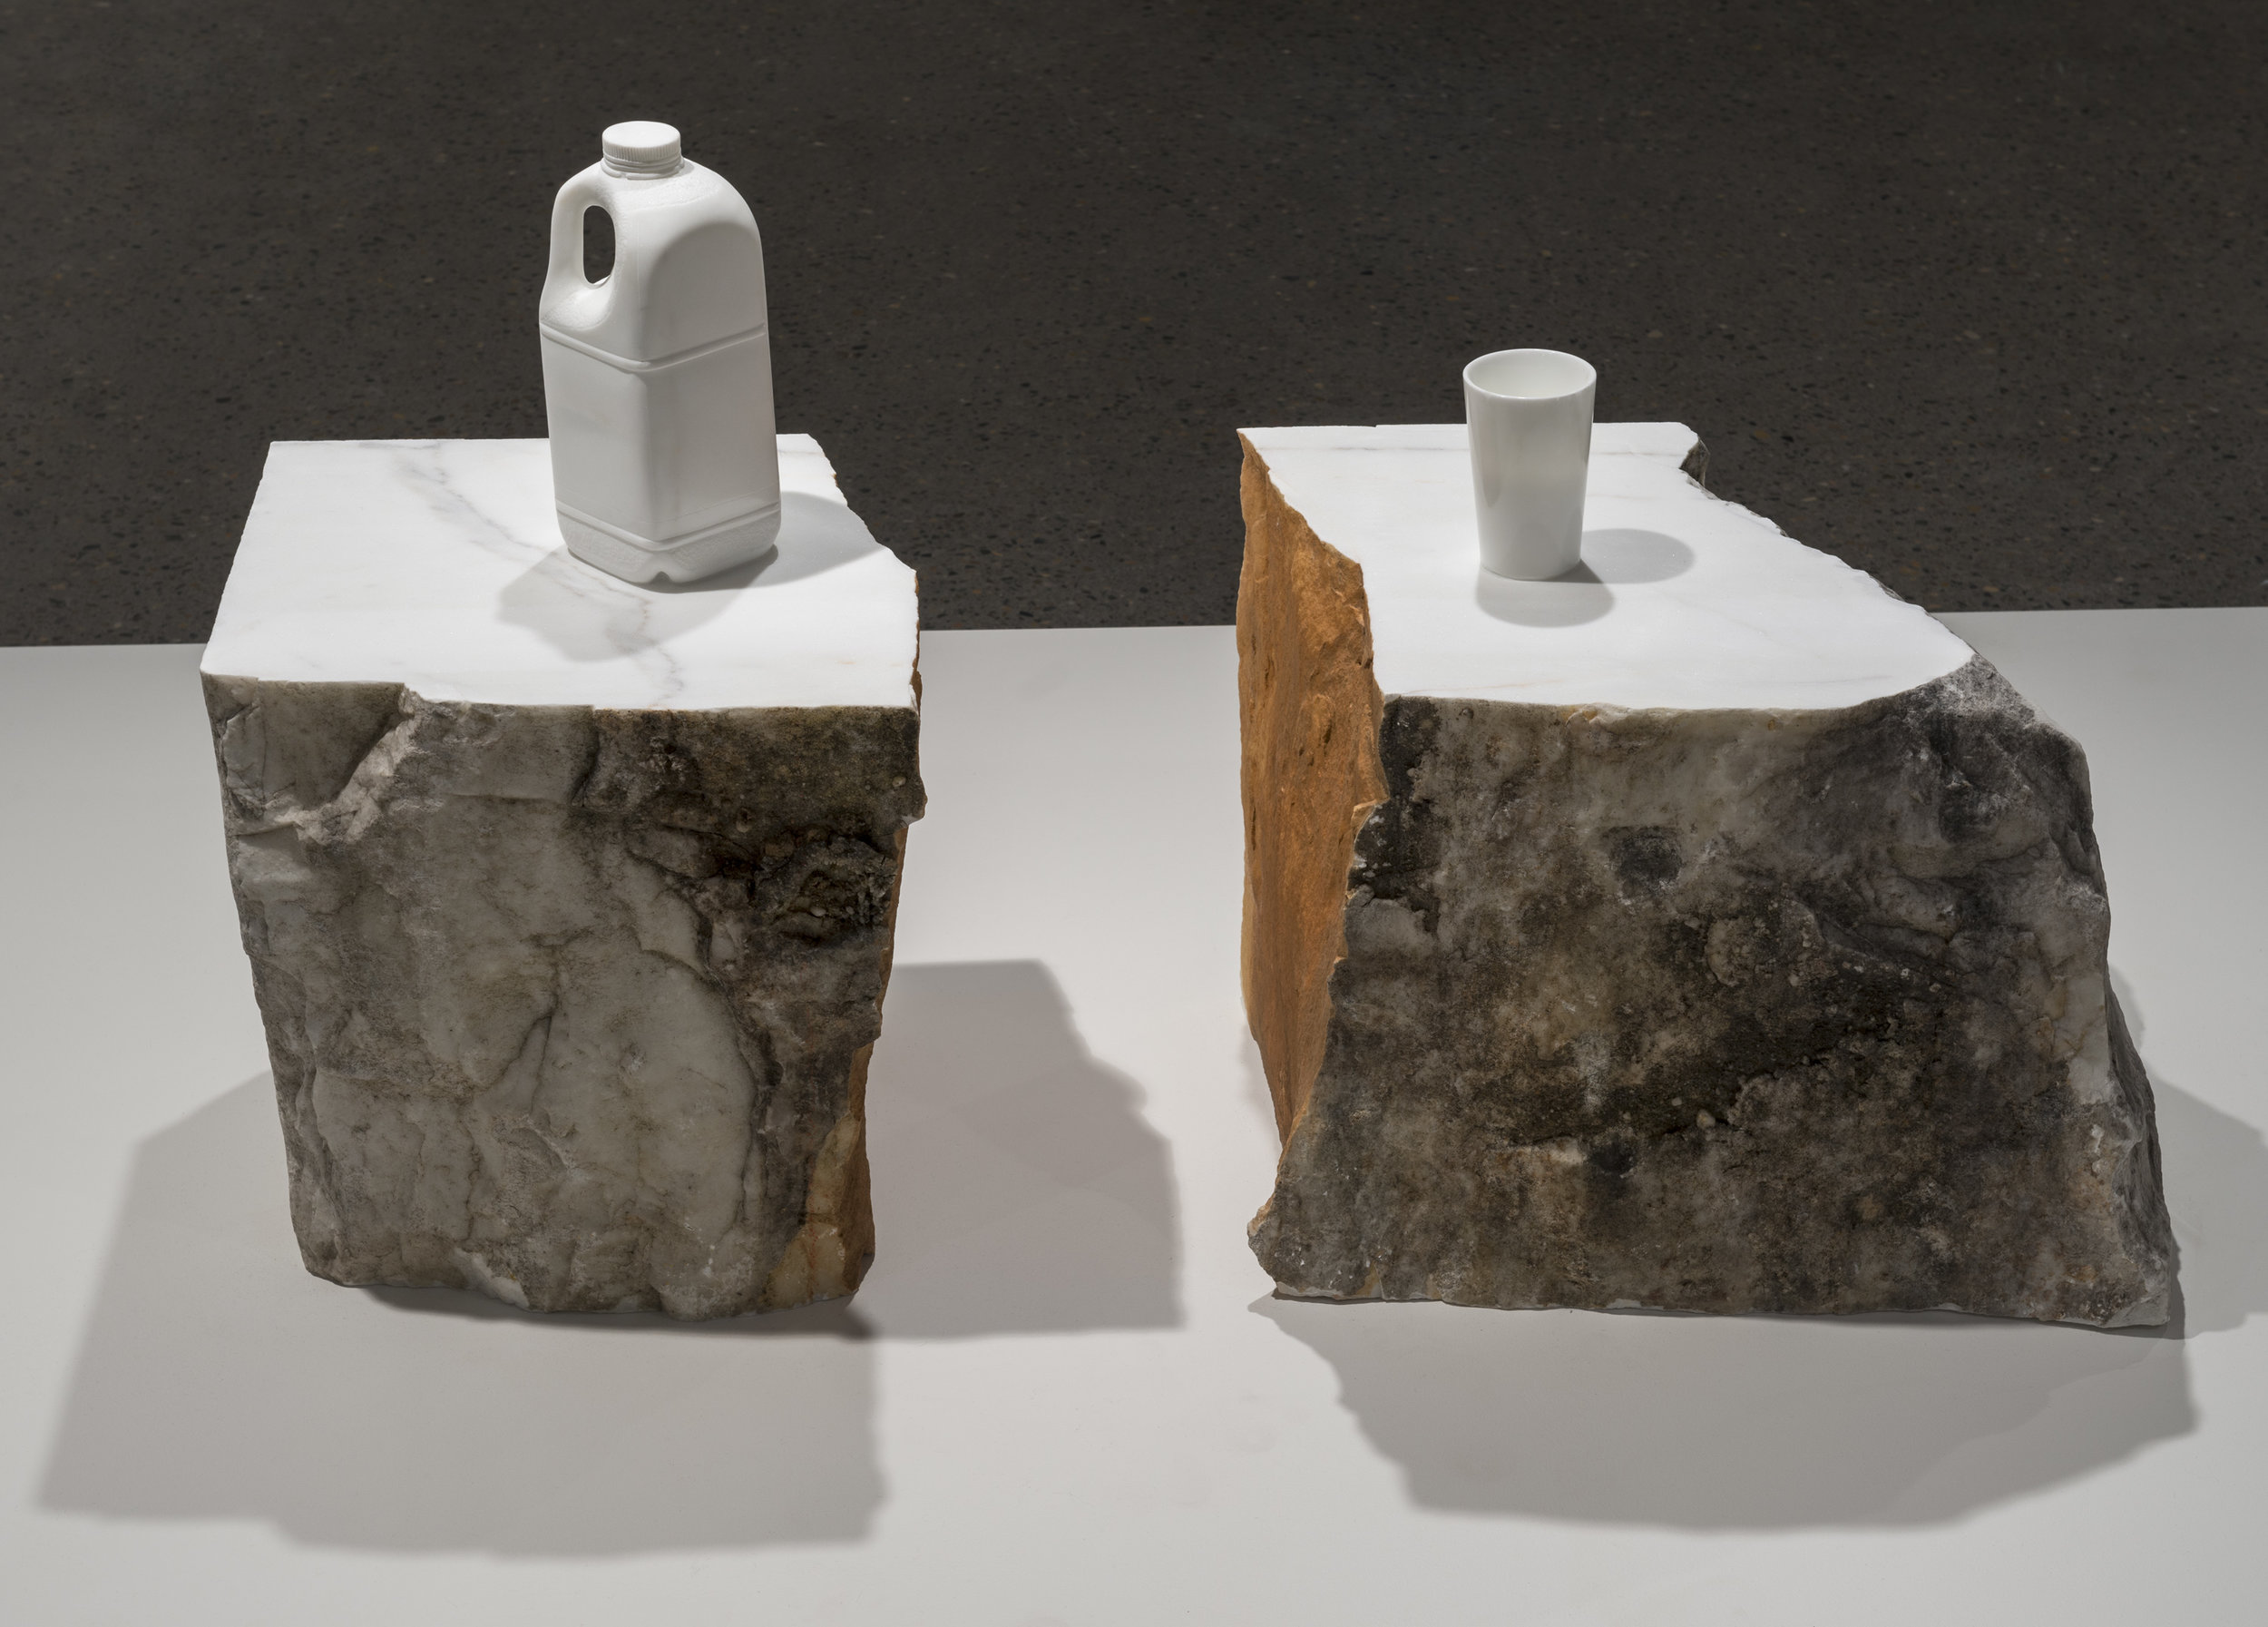 Half   2013  Statuario marble, 315 Duralex glasses and dust from the carving  Two pieces: 56 x 39 x 55 cm and 73 x 39 x 40cm